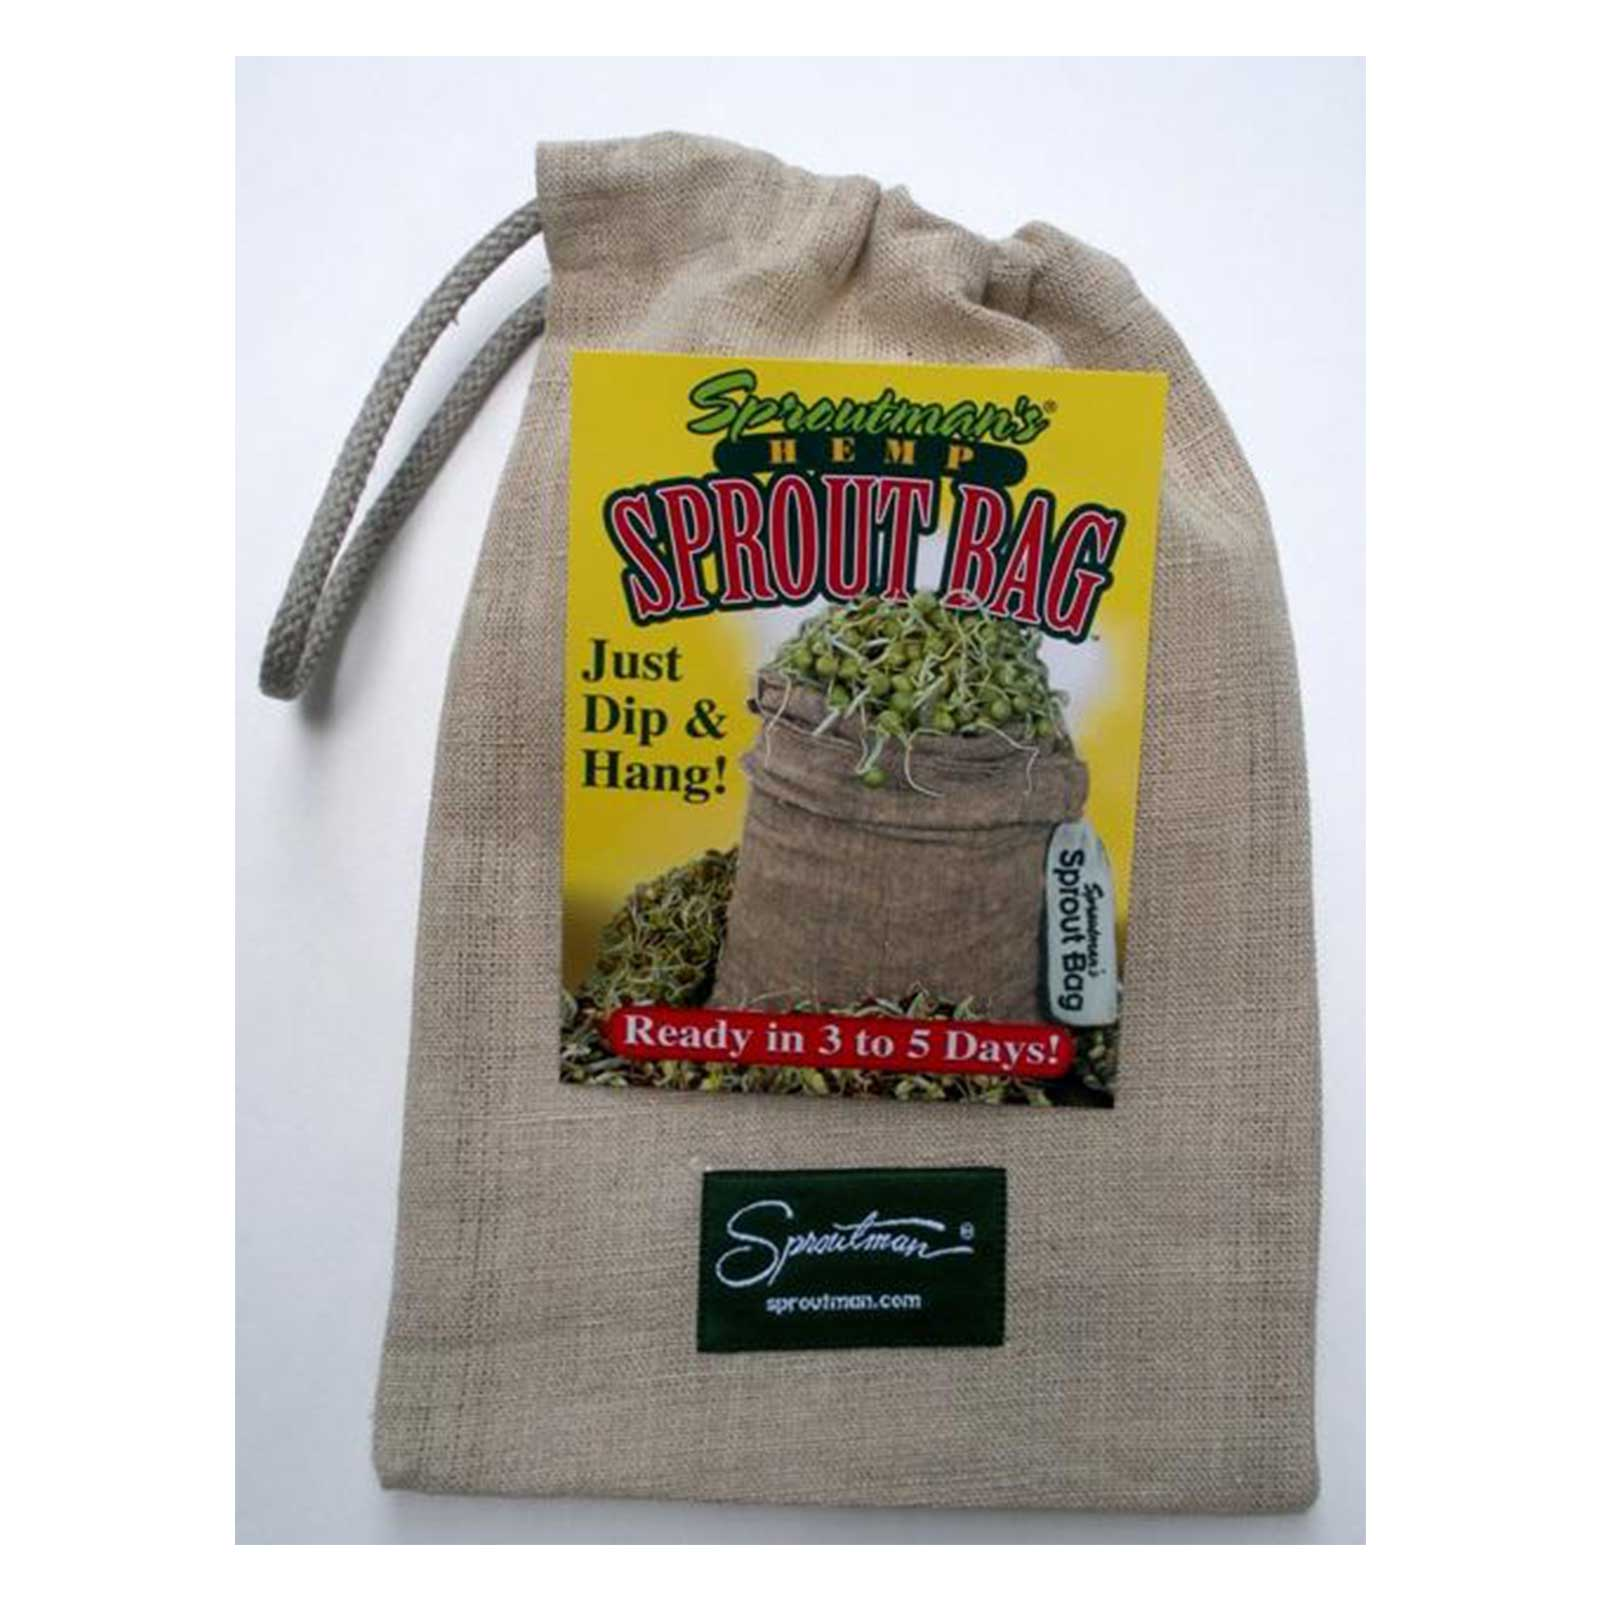 Sproutman Hemp Sprout Bag - Quantity 1 - Grow Sprouts